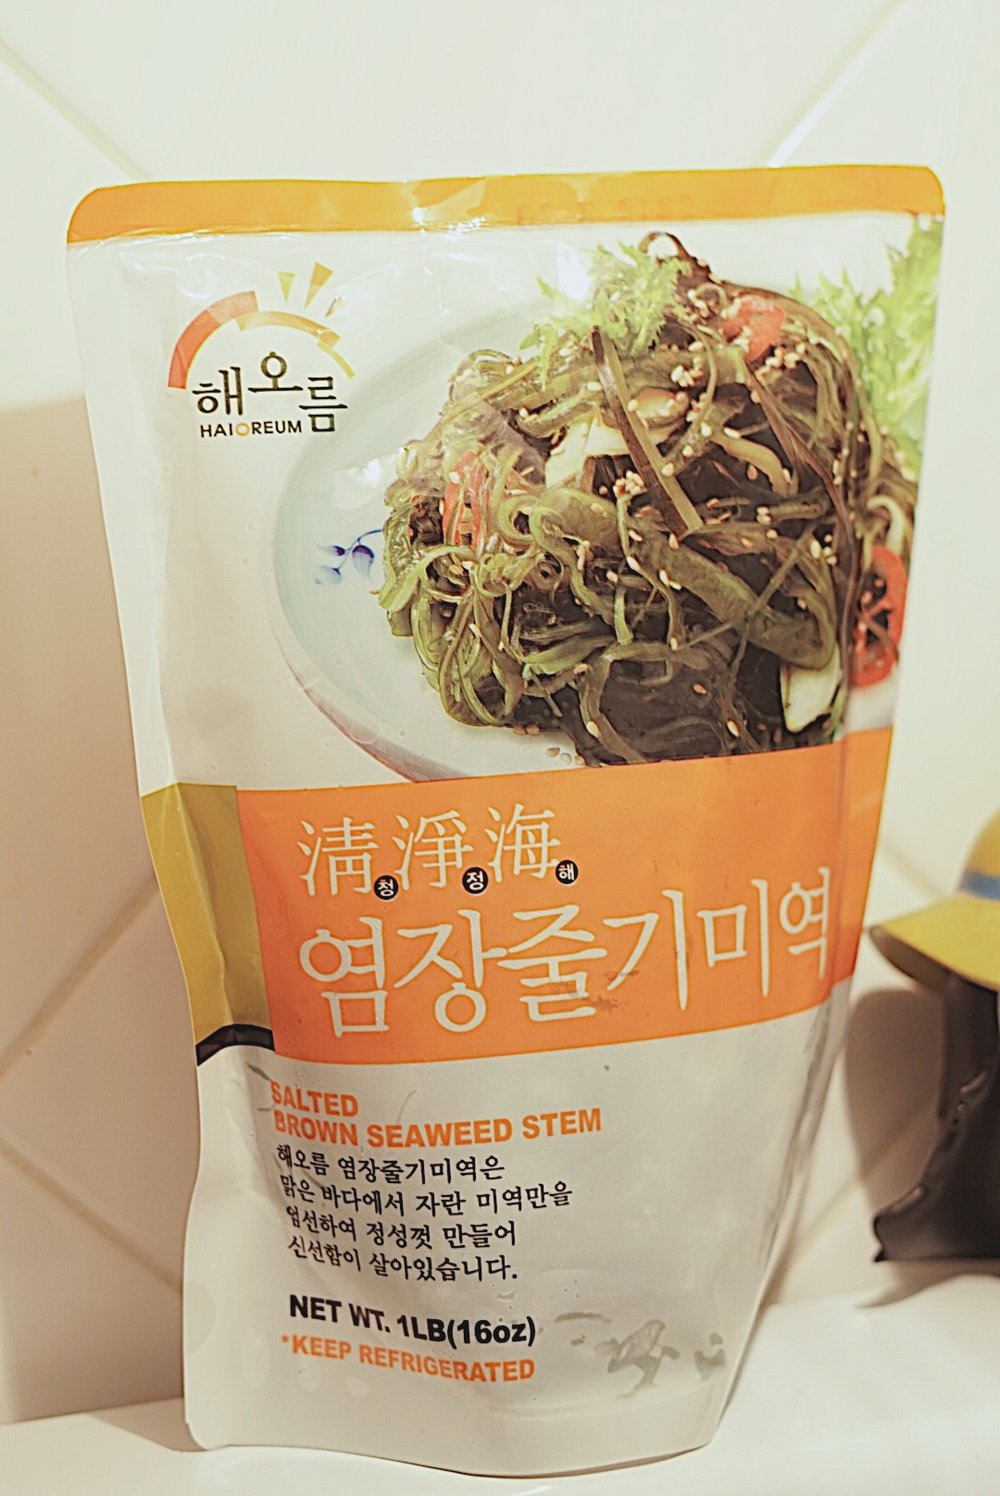 Seaweed stem s often come pre-packaged. - Find em at a local Korean market!